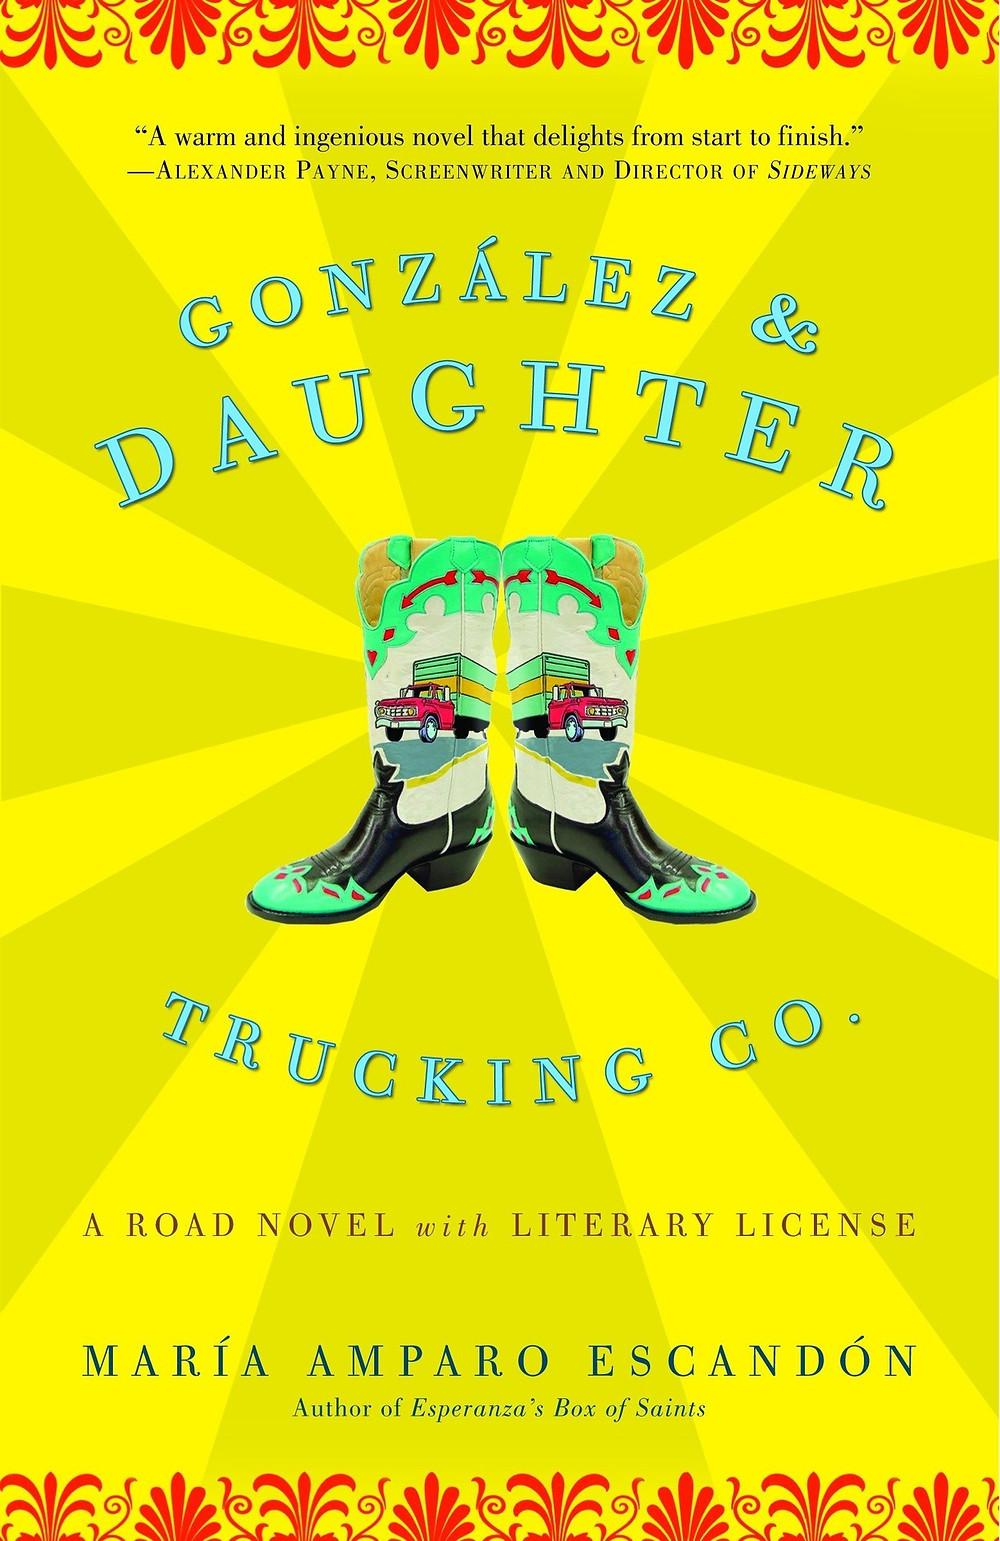 González & Daughter Trucking Co.: A Road Novel with Literary License By María Amparo Escandón 295 pages. 2005. The Book Slut book reviews thebookslut the book slut bookshop